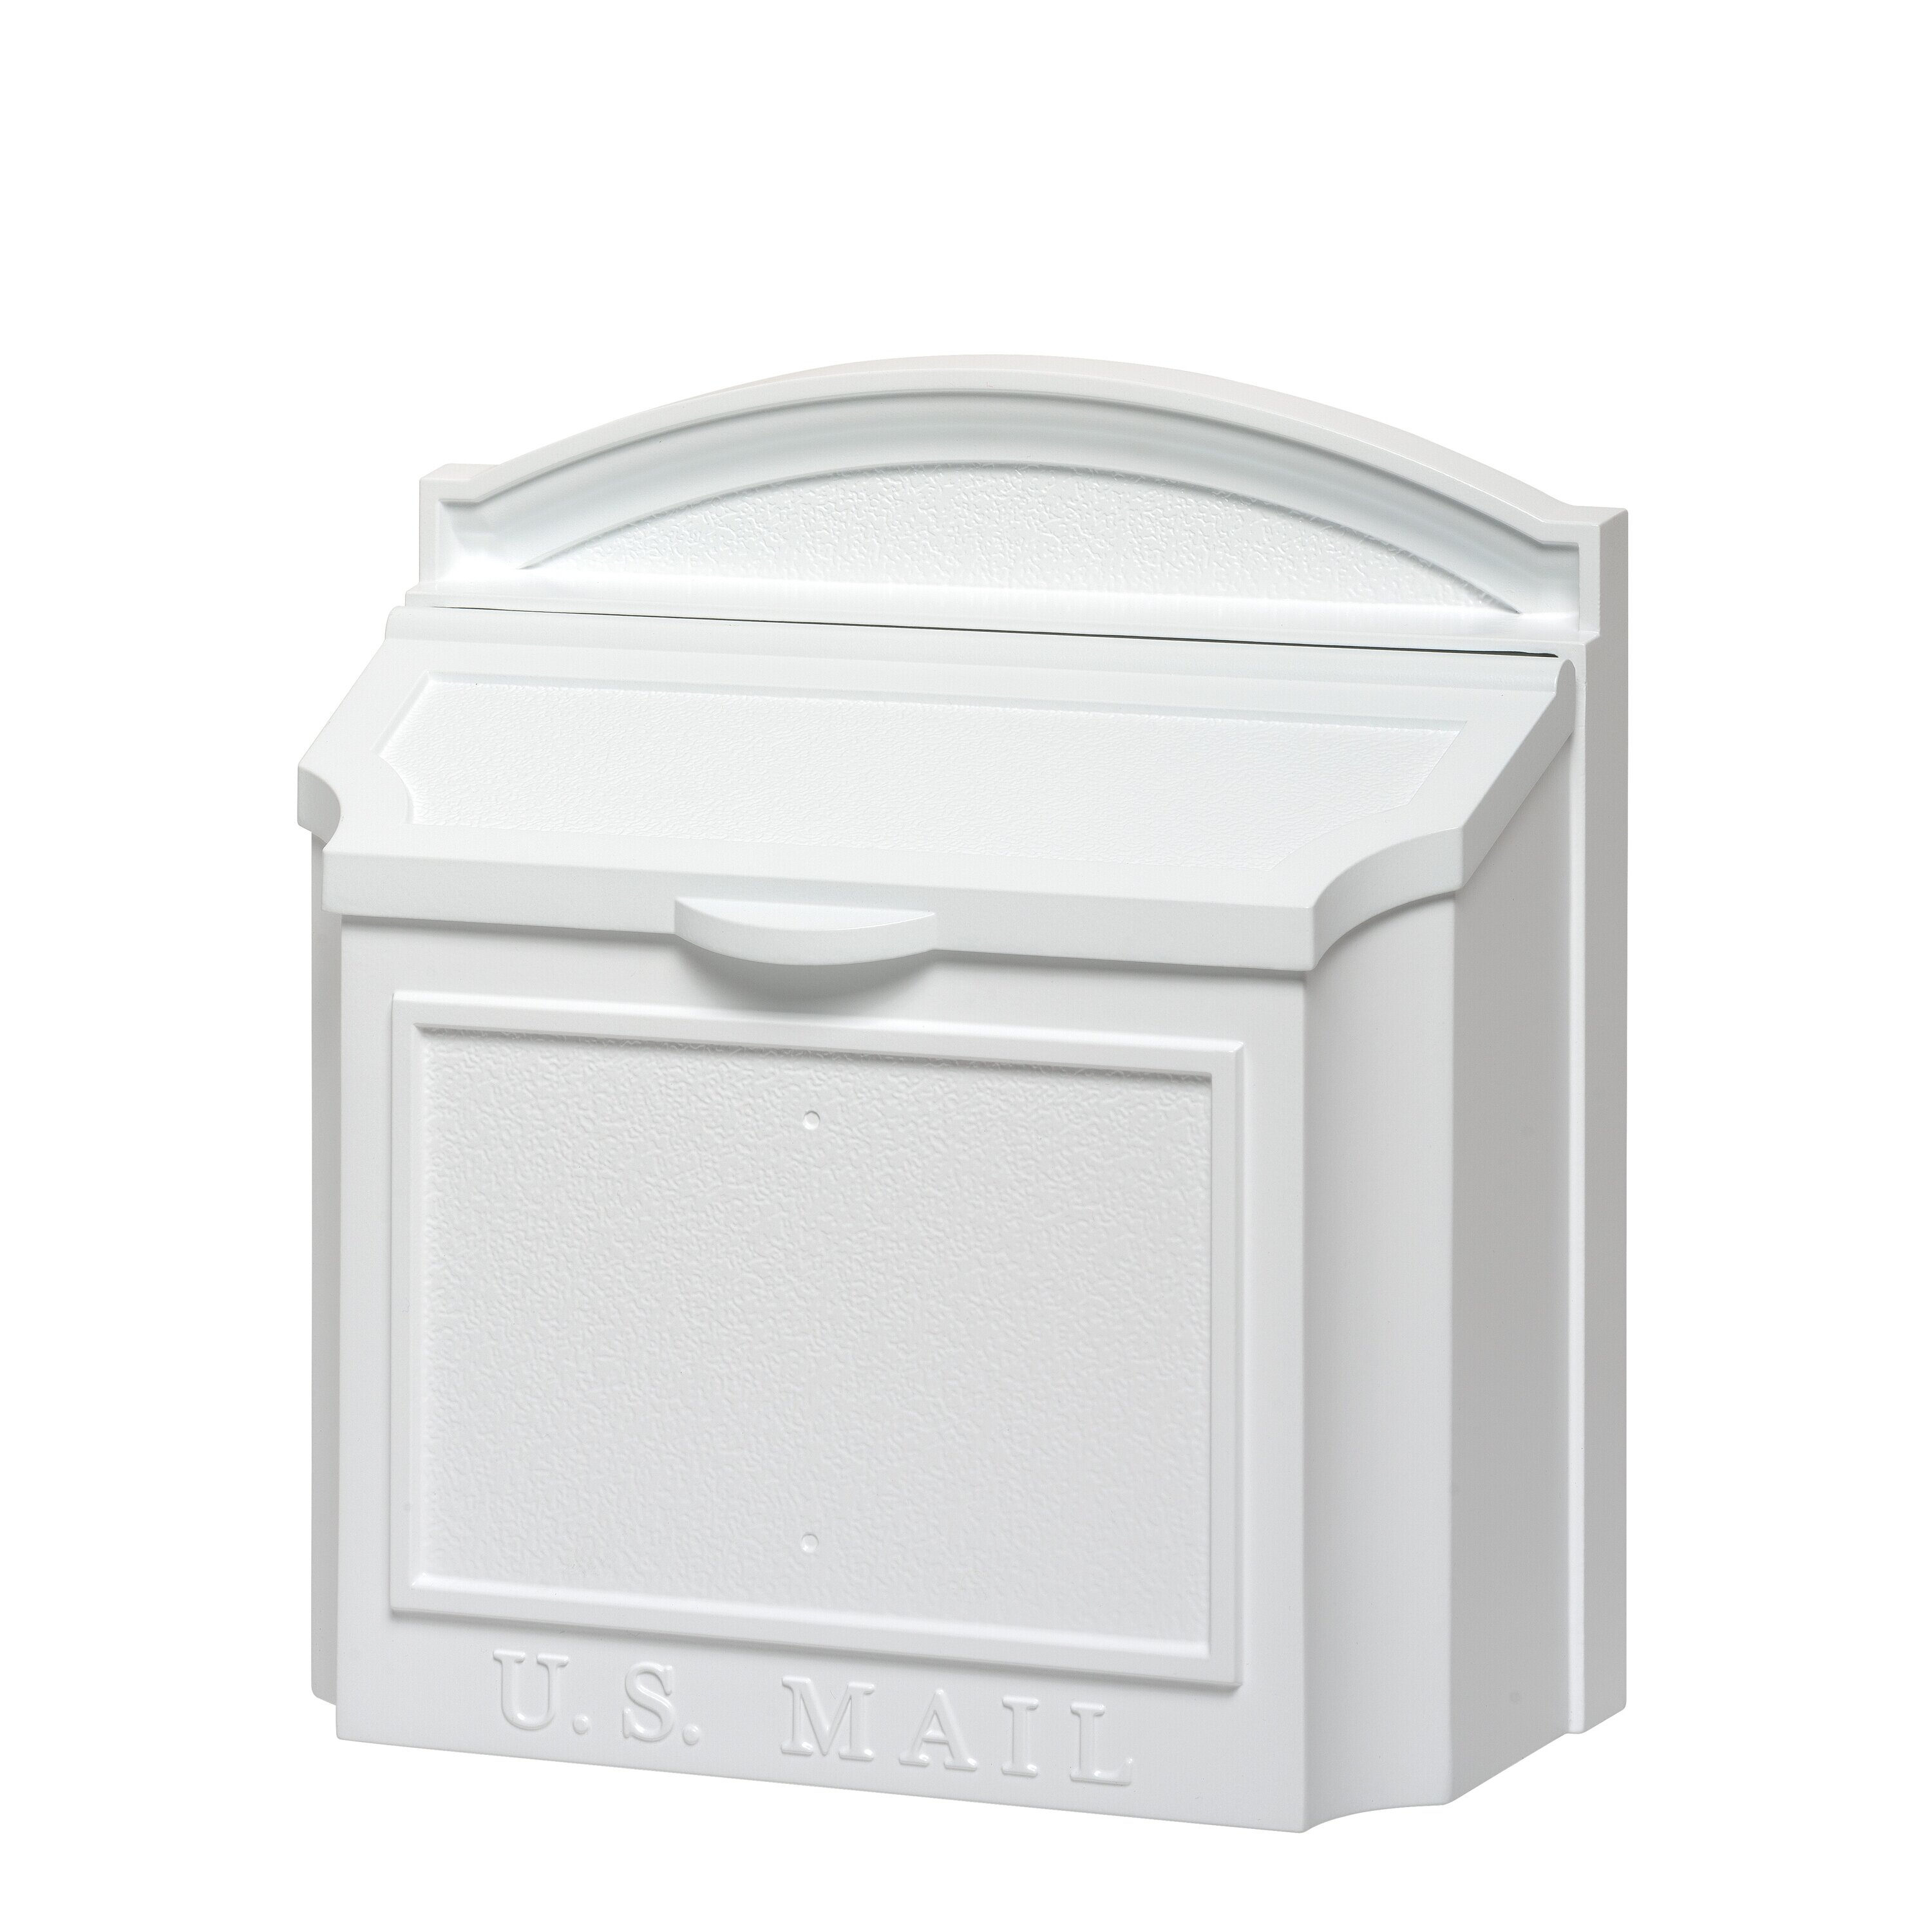 Whitehall Products Wall Mounted Mailbox With Outgoing Mail